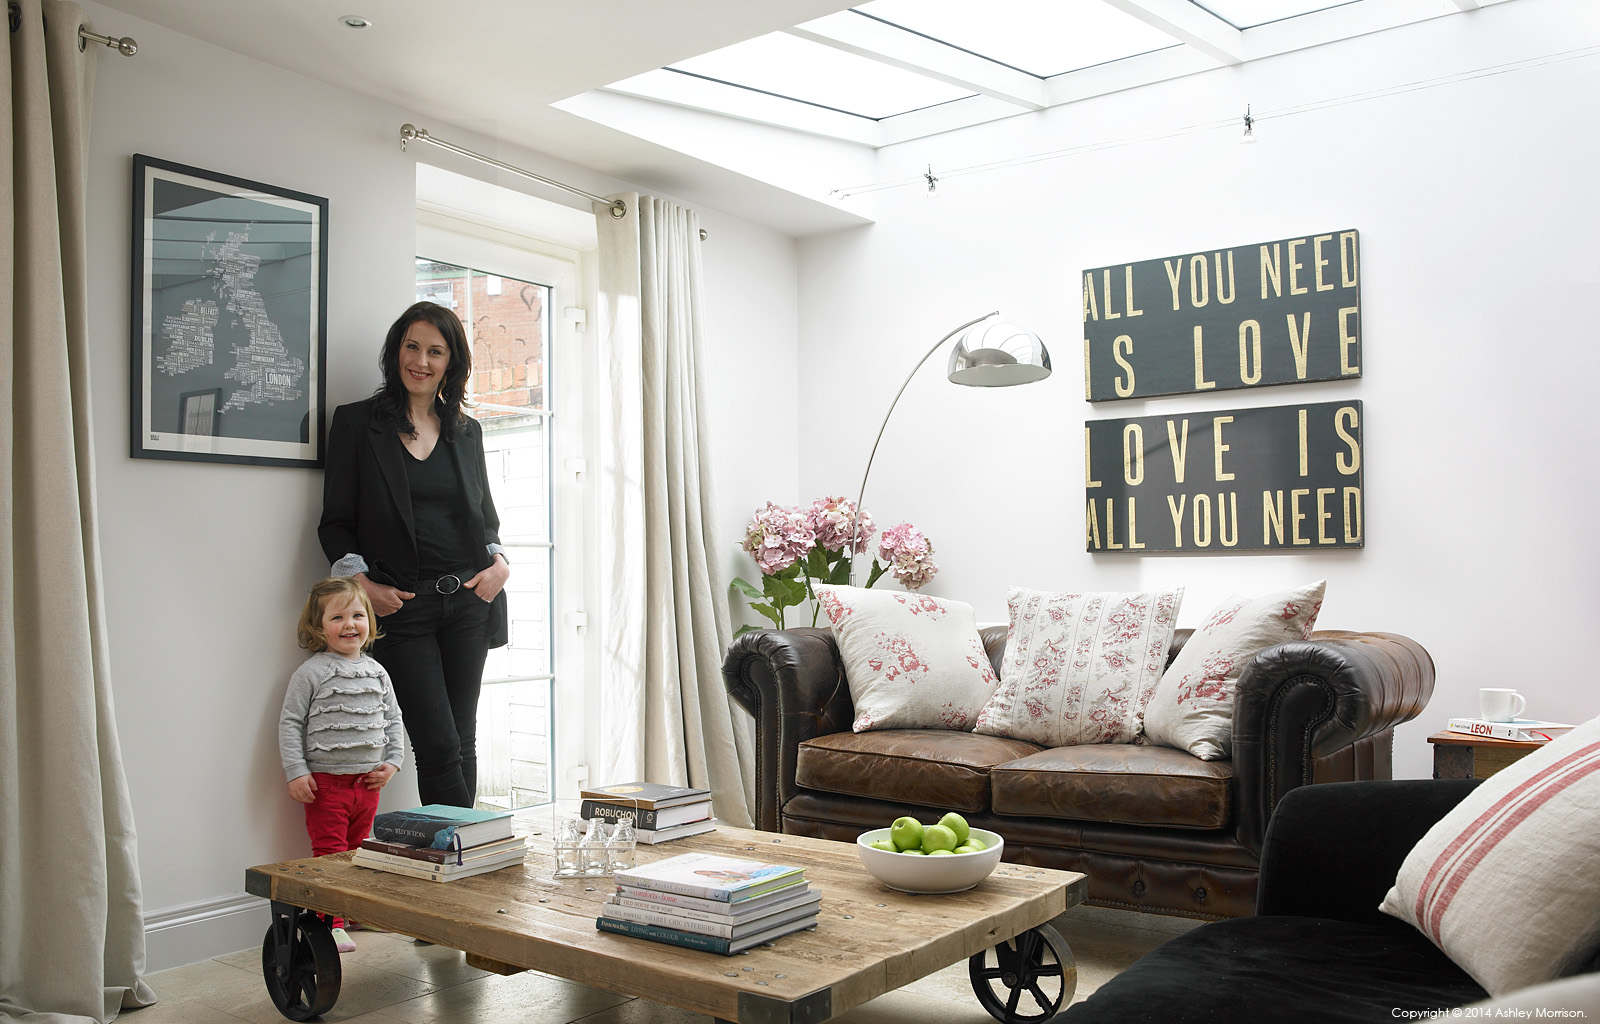 Kelly Ann Preston and her daughter Evie in the living room of their Victorian mid terrace townhouse in Belfast.